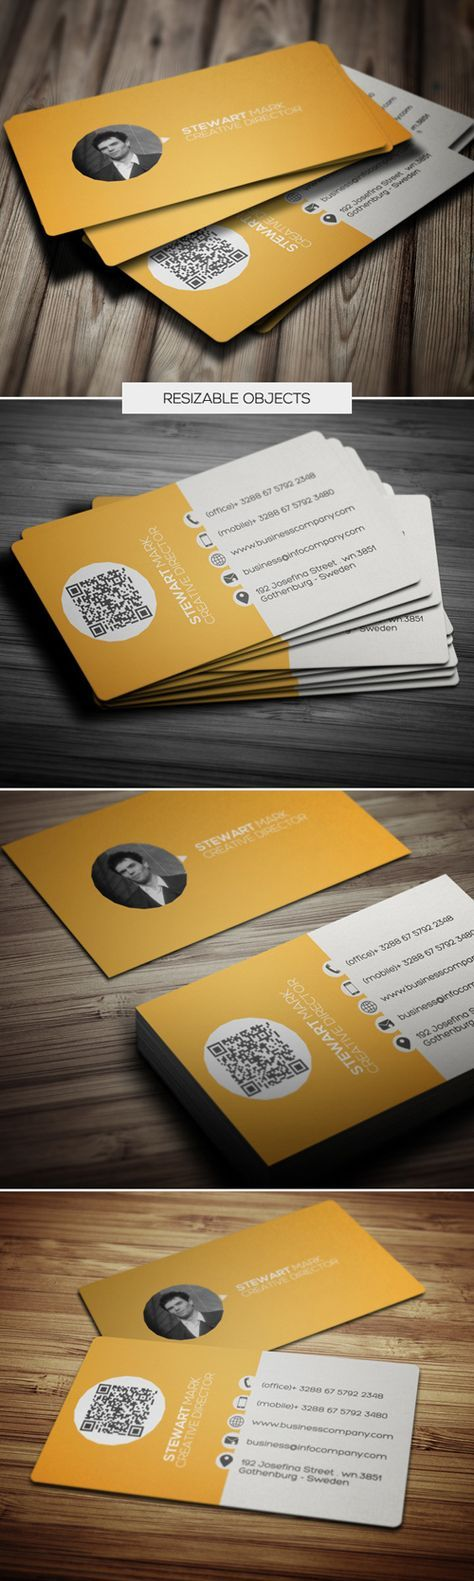 25 Modern and Unique Business Cards Design